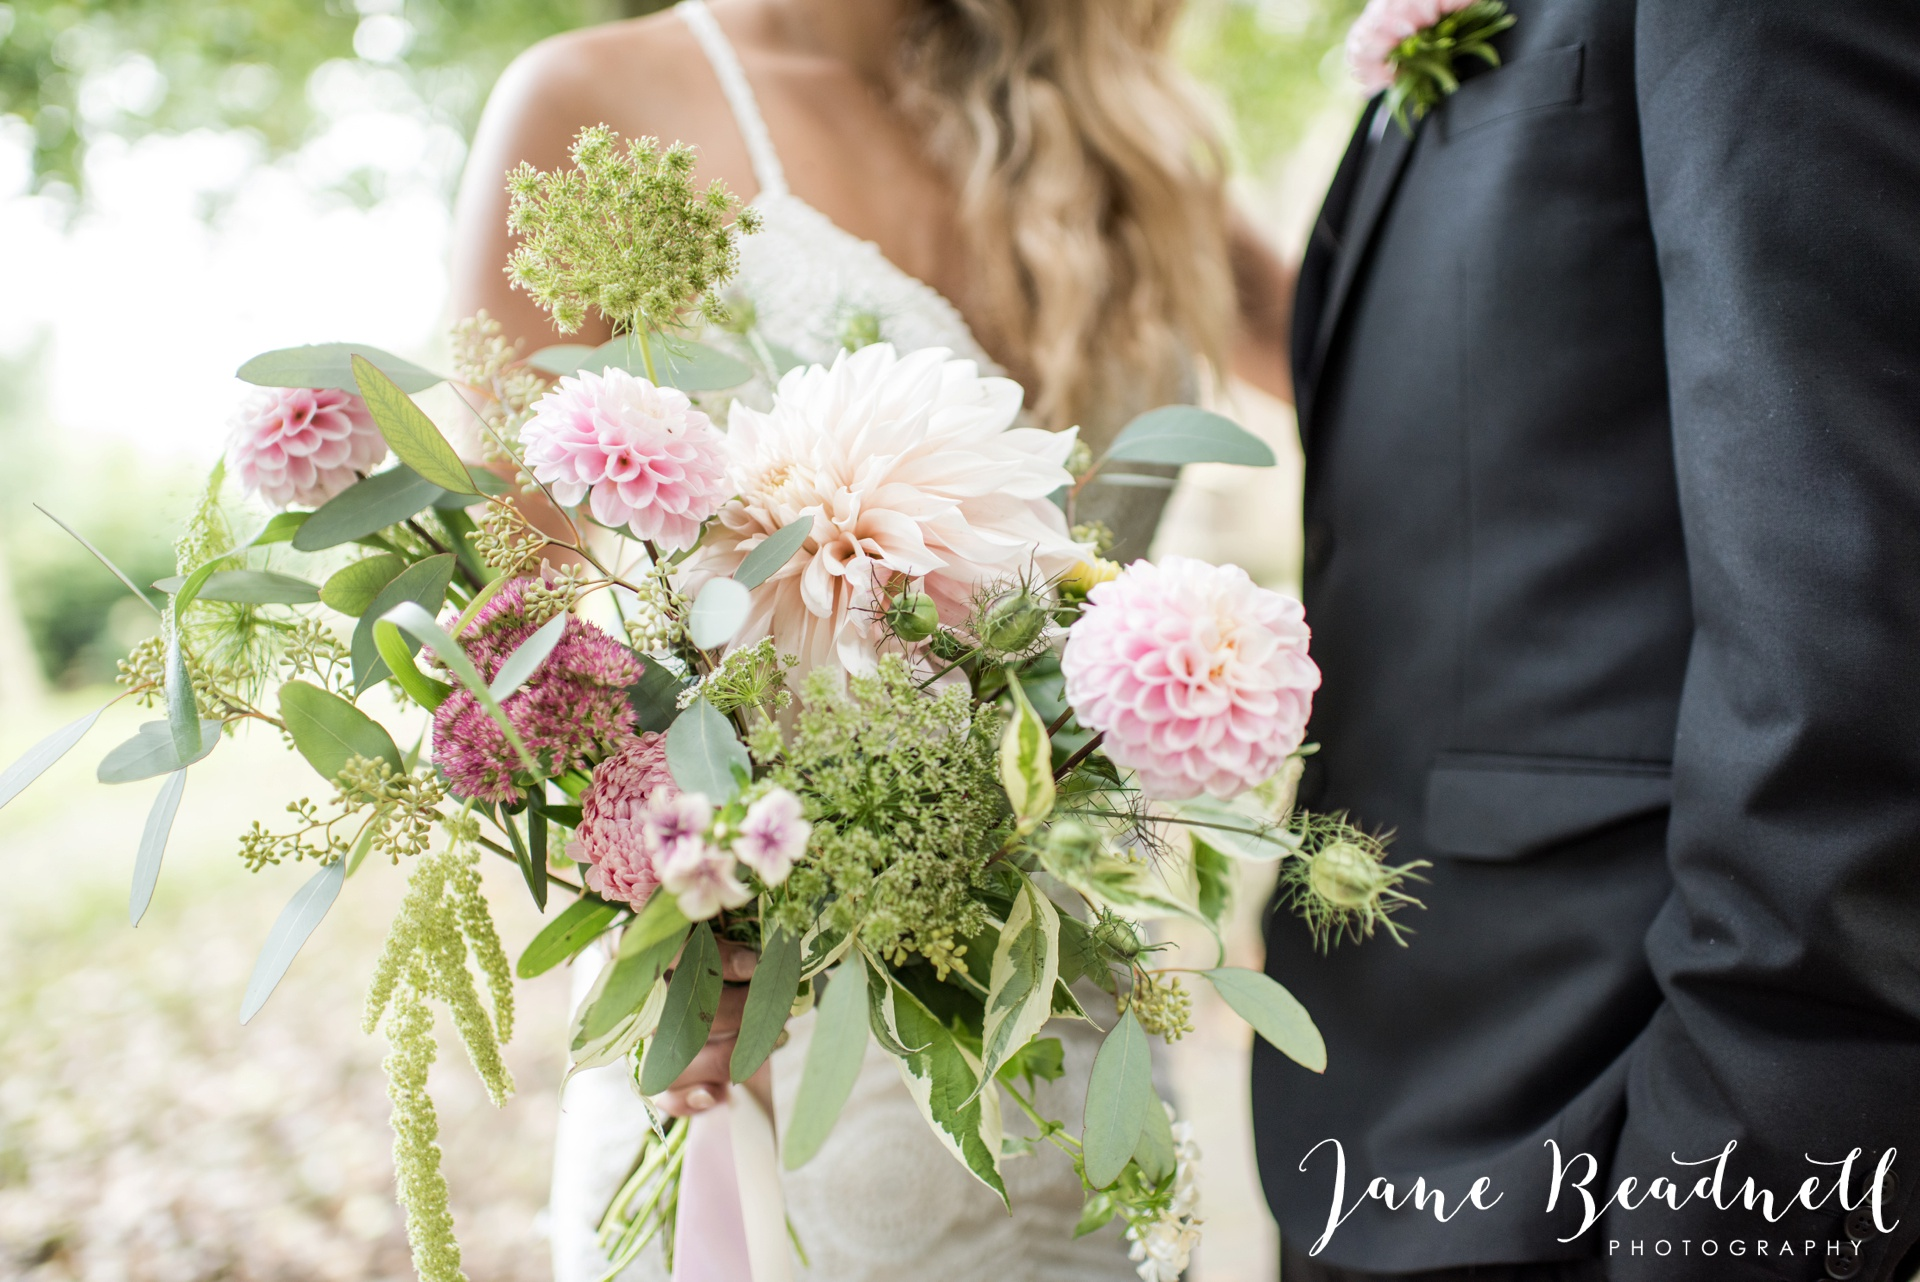 yorkshire-fine-art-wedding-photographer-jane-beadnell-photography-with-leafy-couture-wedding-flowers_0004